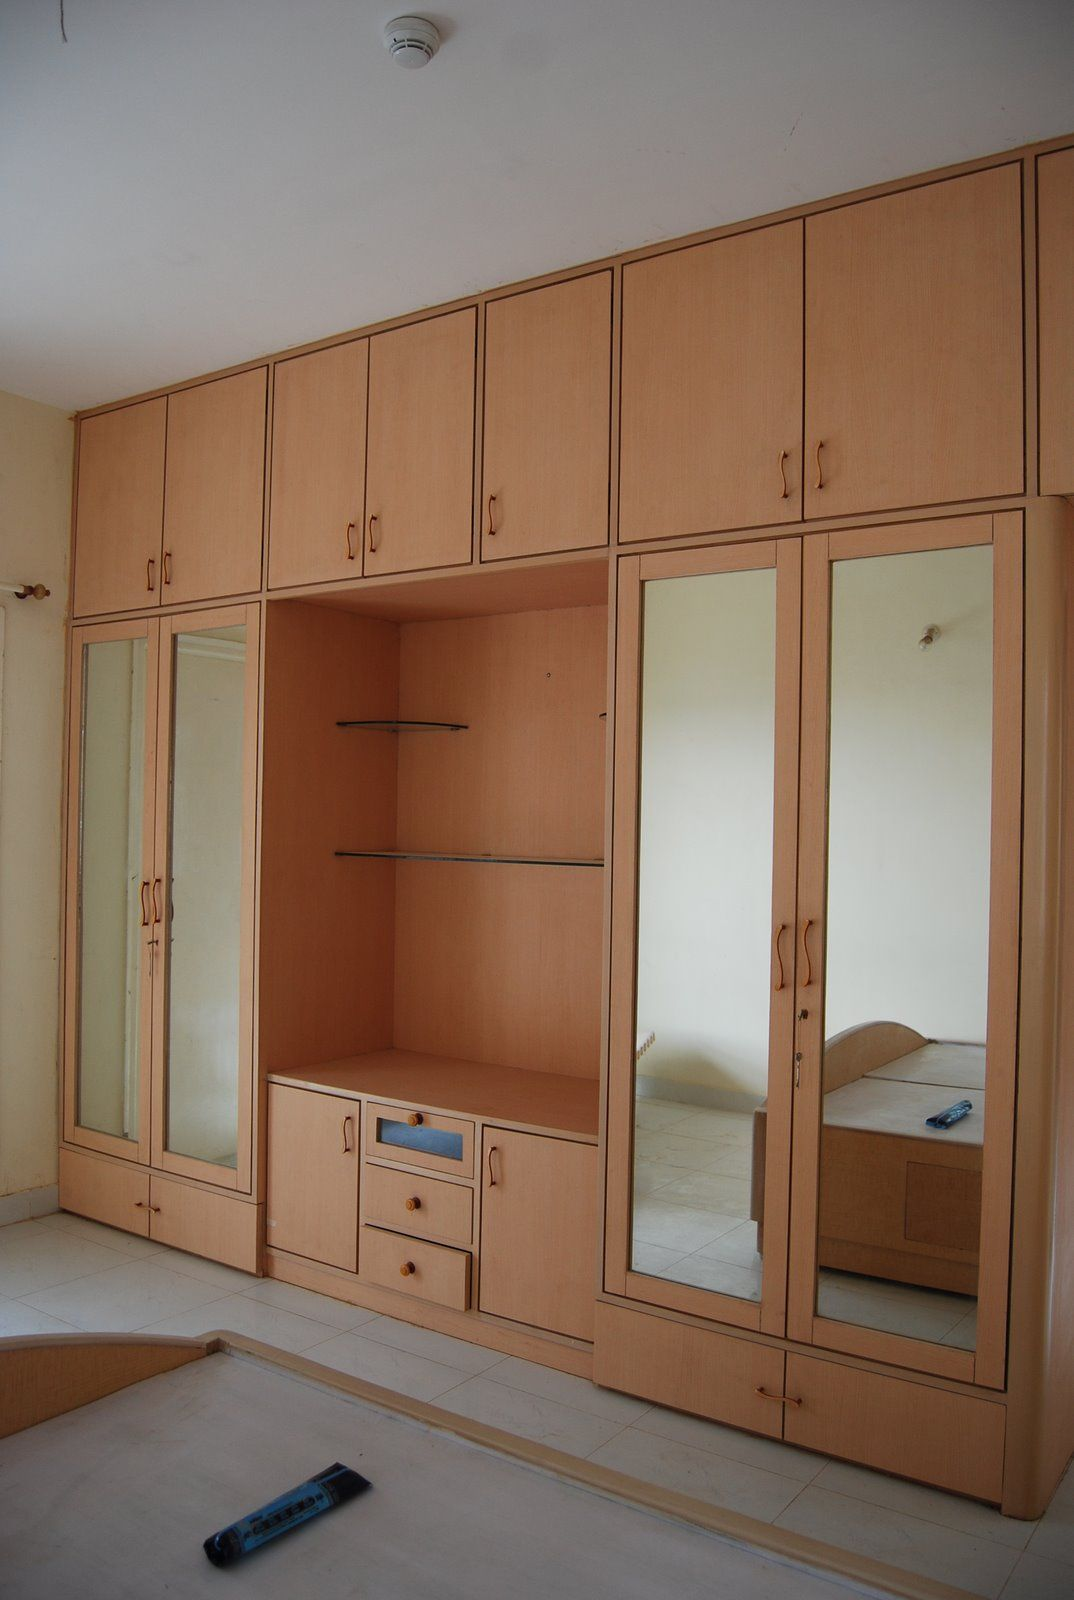 Room Cabinet Images Bedroom Wardrobe Design Playwood Wadrobe With Cabinets Also